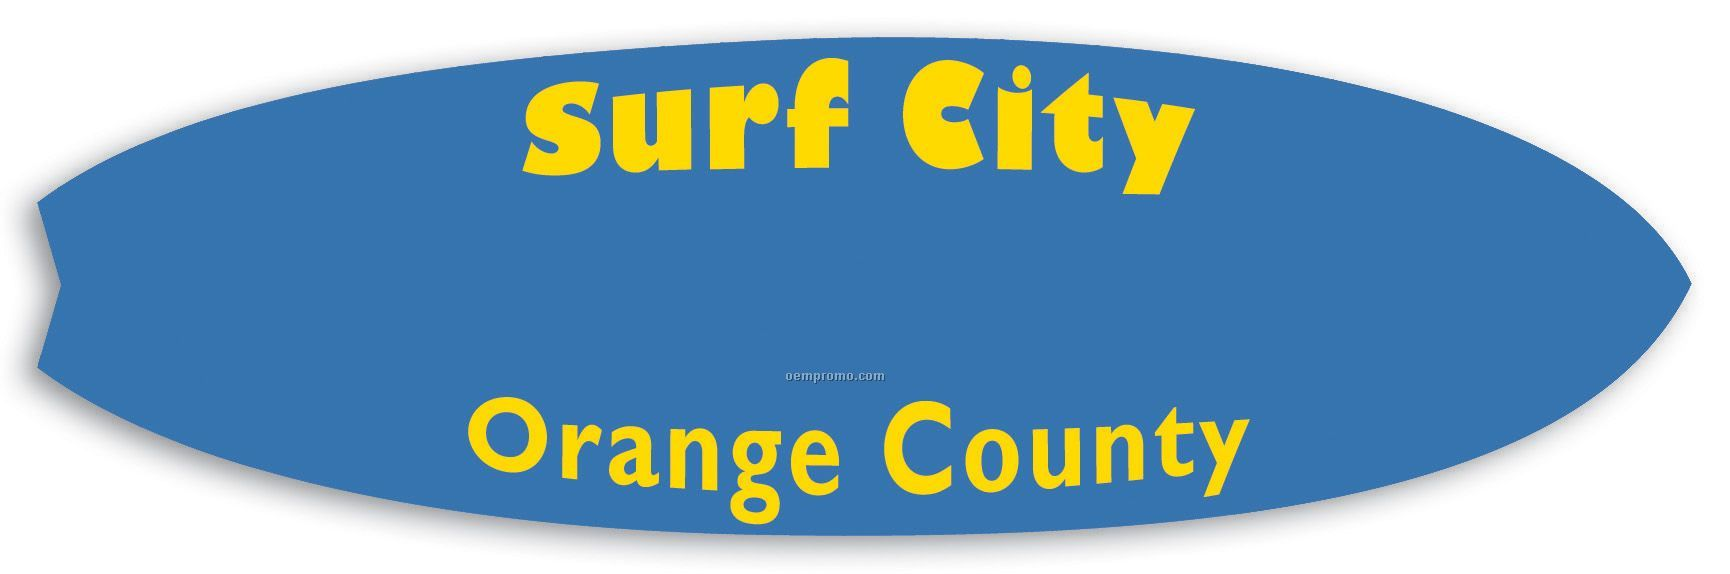 Surfboard Poly Badge - 1.625 X 5.5""